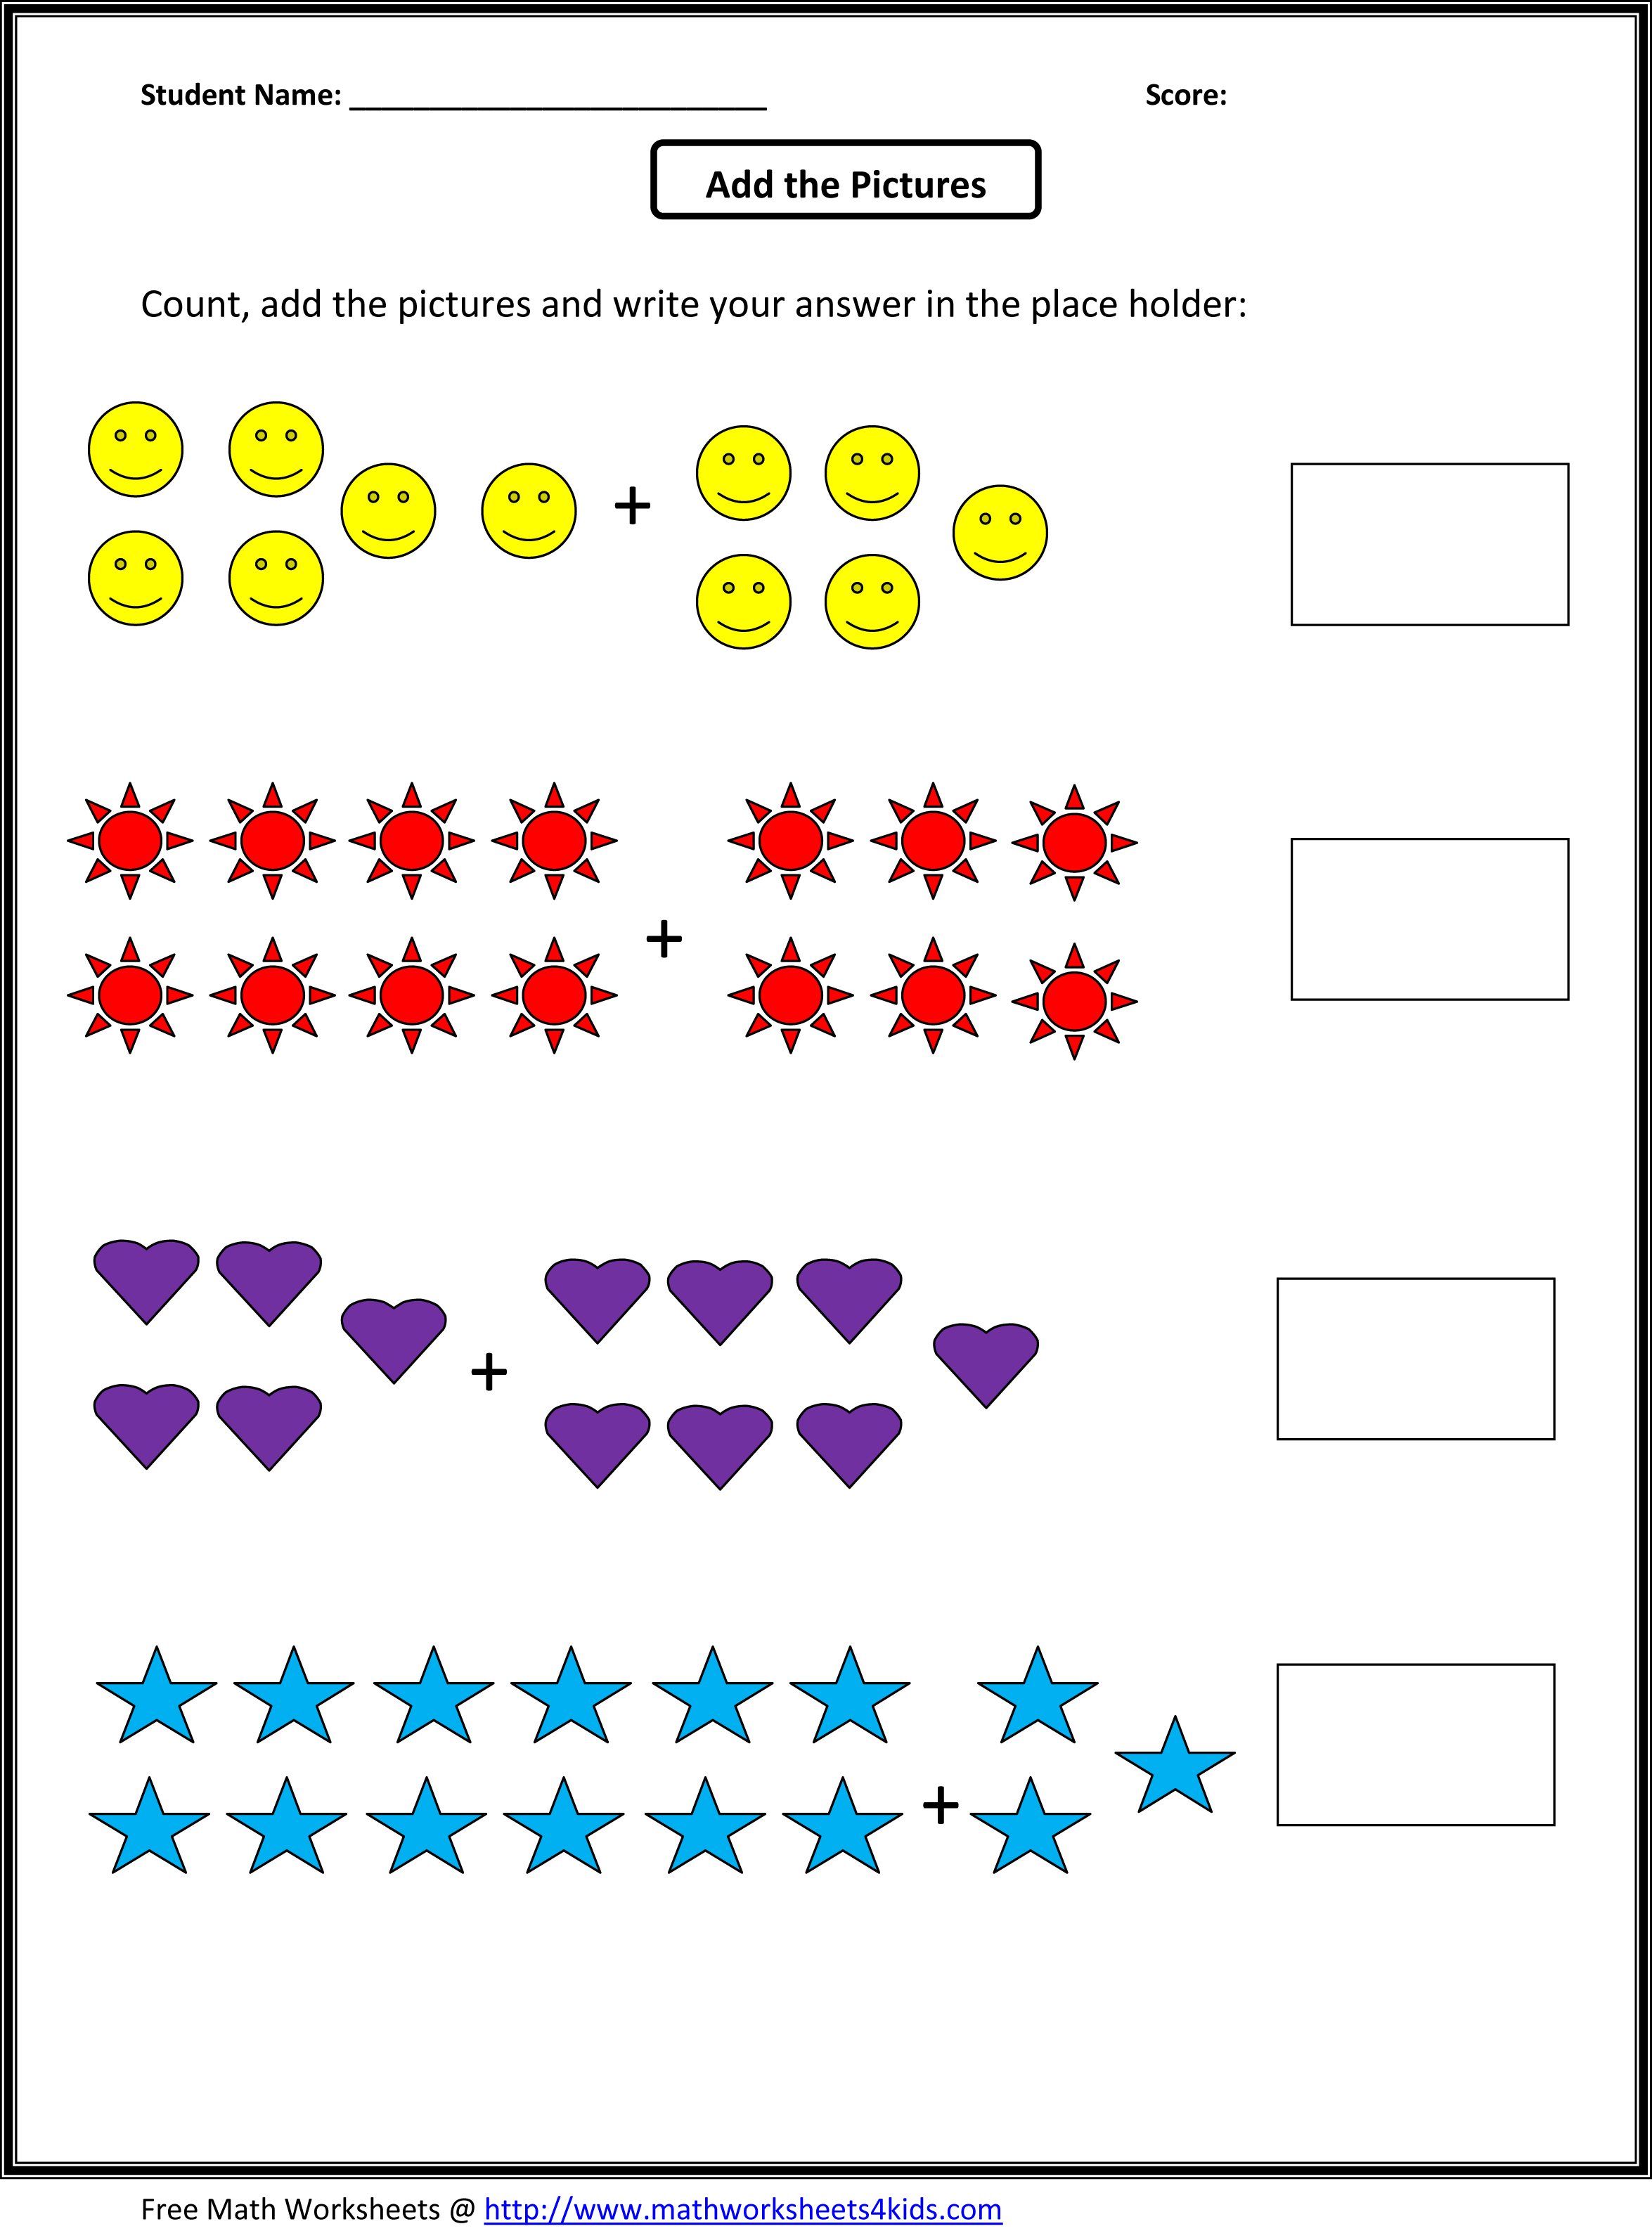 Proatmealus  Gorgeous Grade  Maths Worksheet  Reocurent With Extraordinary Math Worksheets For St Grade Free  Reocurent With Nice Skip Counting By  Worksheets For Kindergarten Also Math Mad Minutes Worksheets In Addition Math Variables Worksheet And Worksheets For Compound Words As Well As Compound Words Worksheet Grade  Additionally Numbers For Kids Worksheet From Reocurentcom With Proatmealus  Extraordinary Grade  Maths Worksheet  Reocurent With Nice Math Worksheets For St Grade Free  Reocurent And Gorgeous Skip Counting By  Worksheets For Kindergarten Also Math Mad Minutes Worksheets In Addition Math Variables Worksheet From Reocurentcom